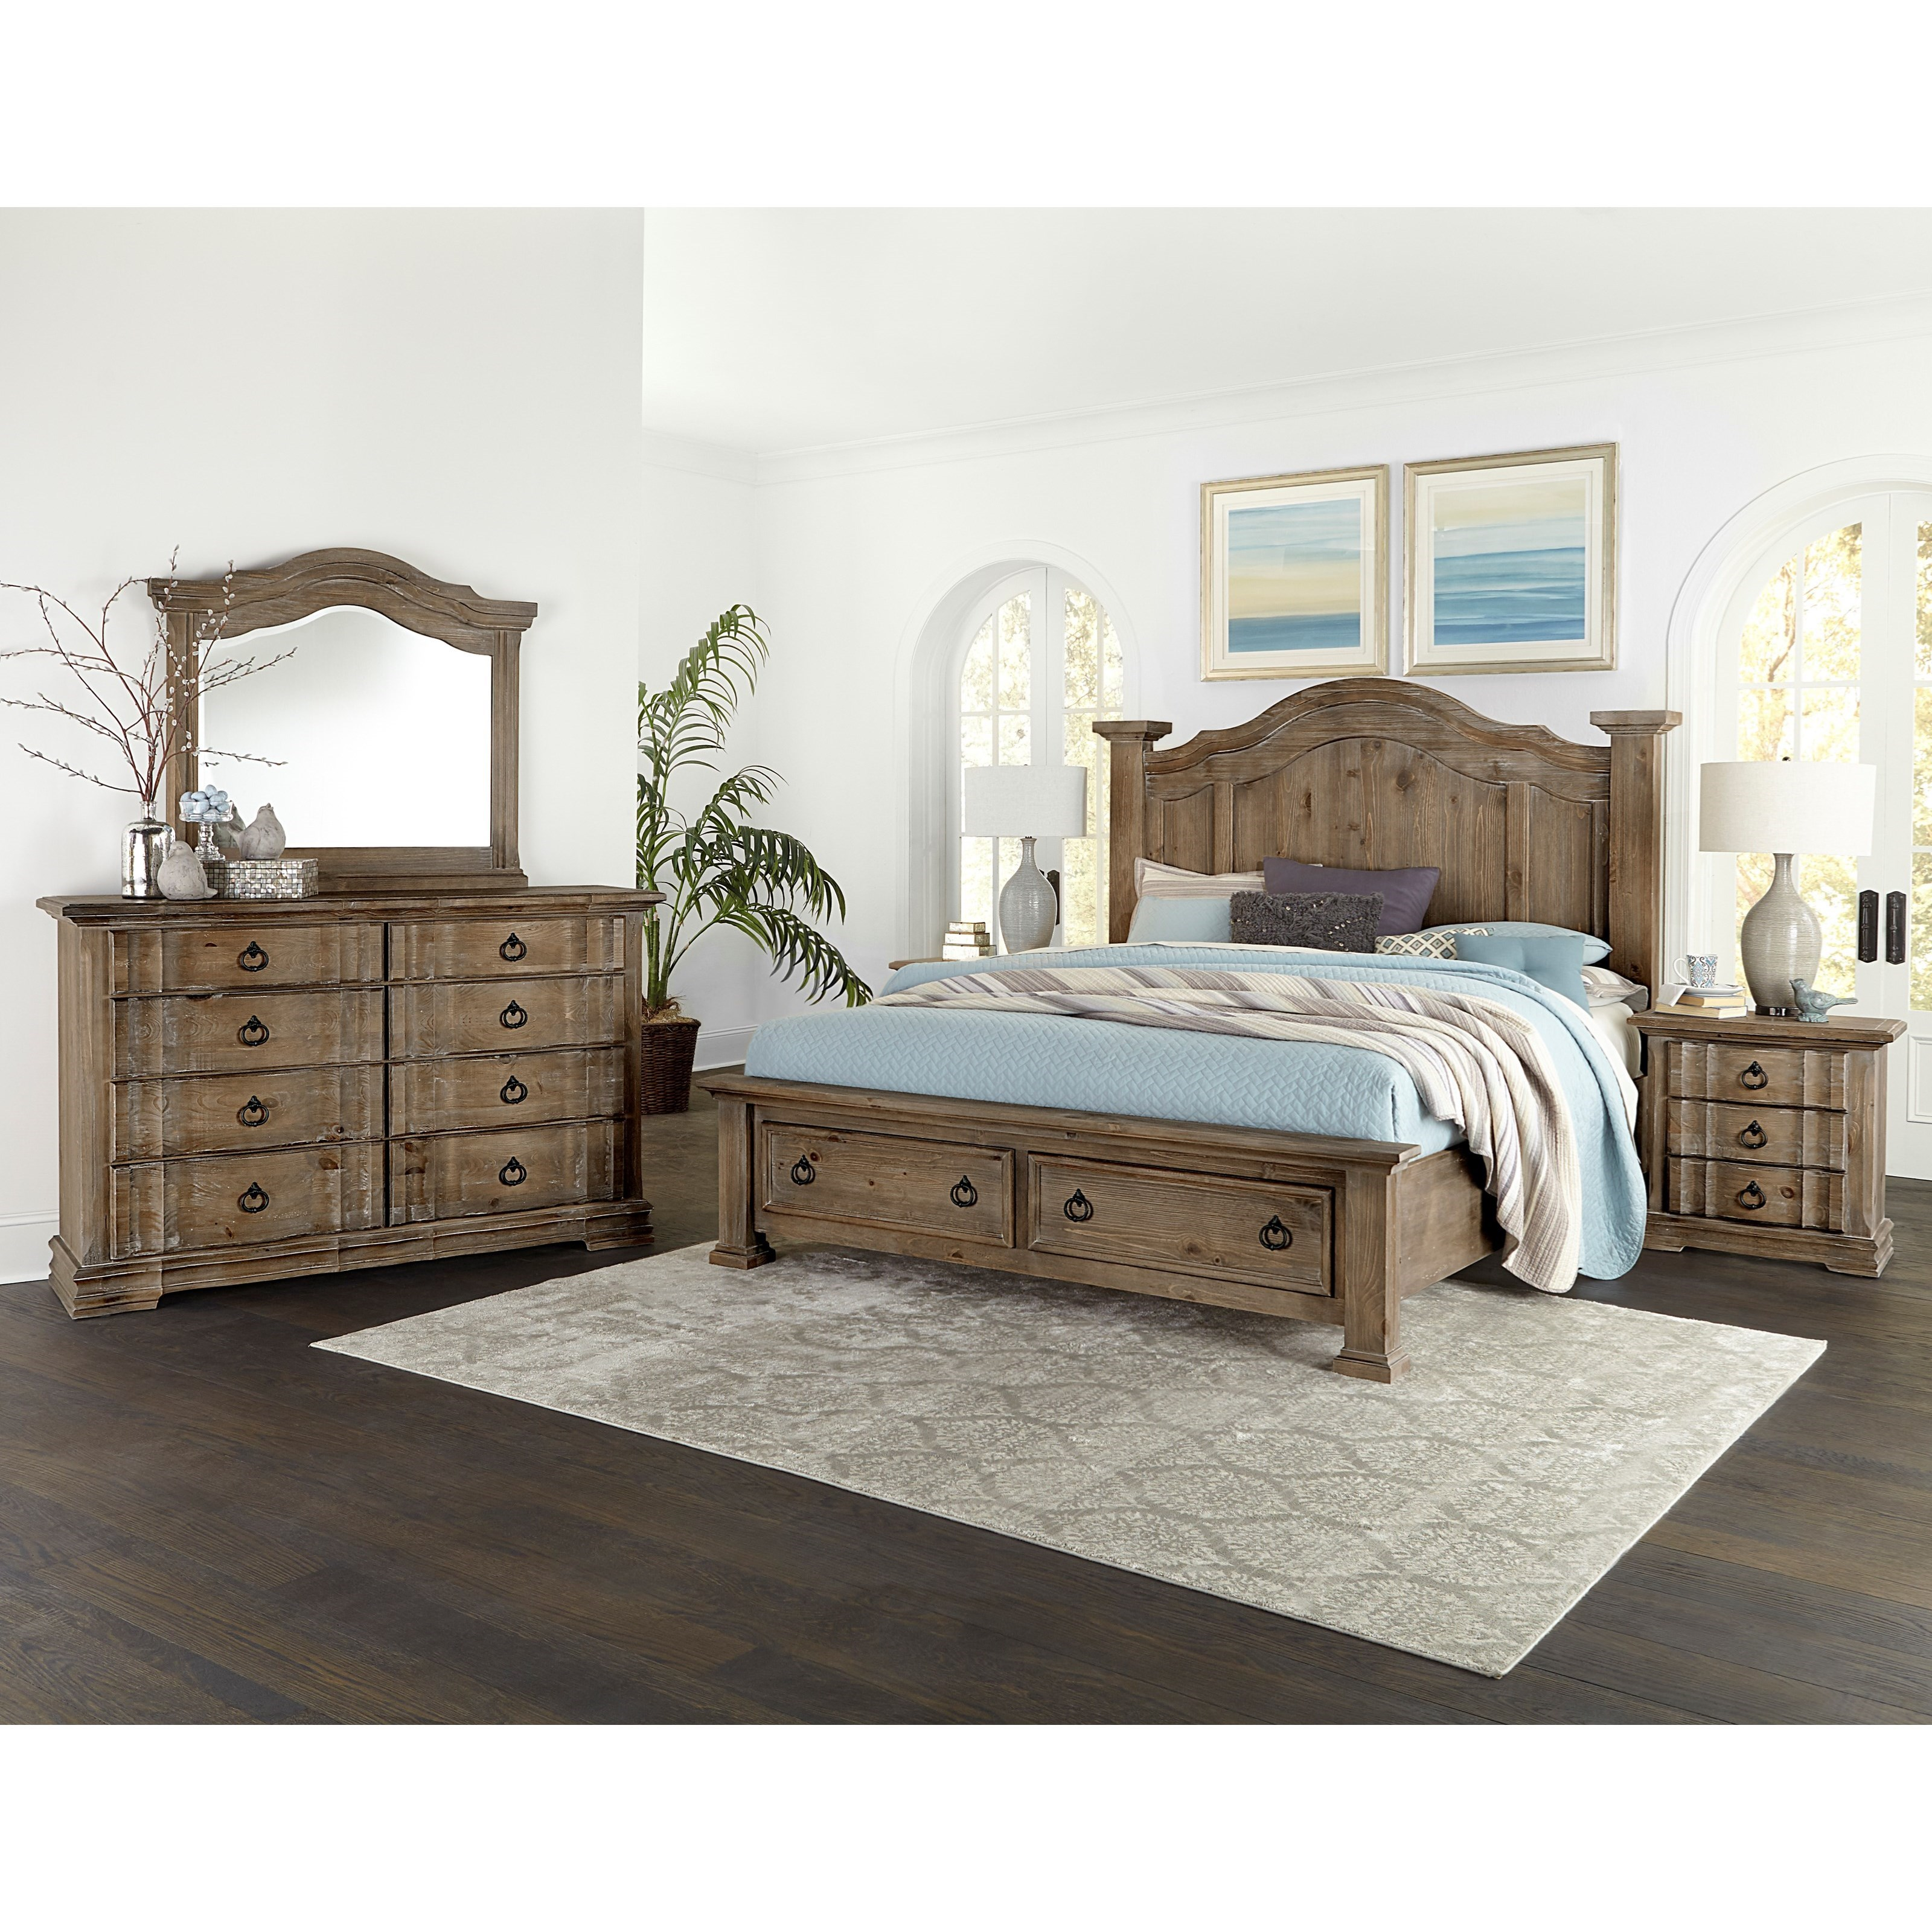 Vaughan bassett rustic hills king poster bed with storage - Bedroom furniture made in north carolina ...